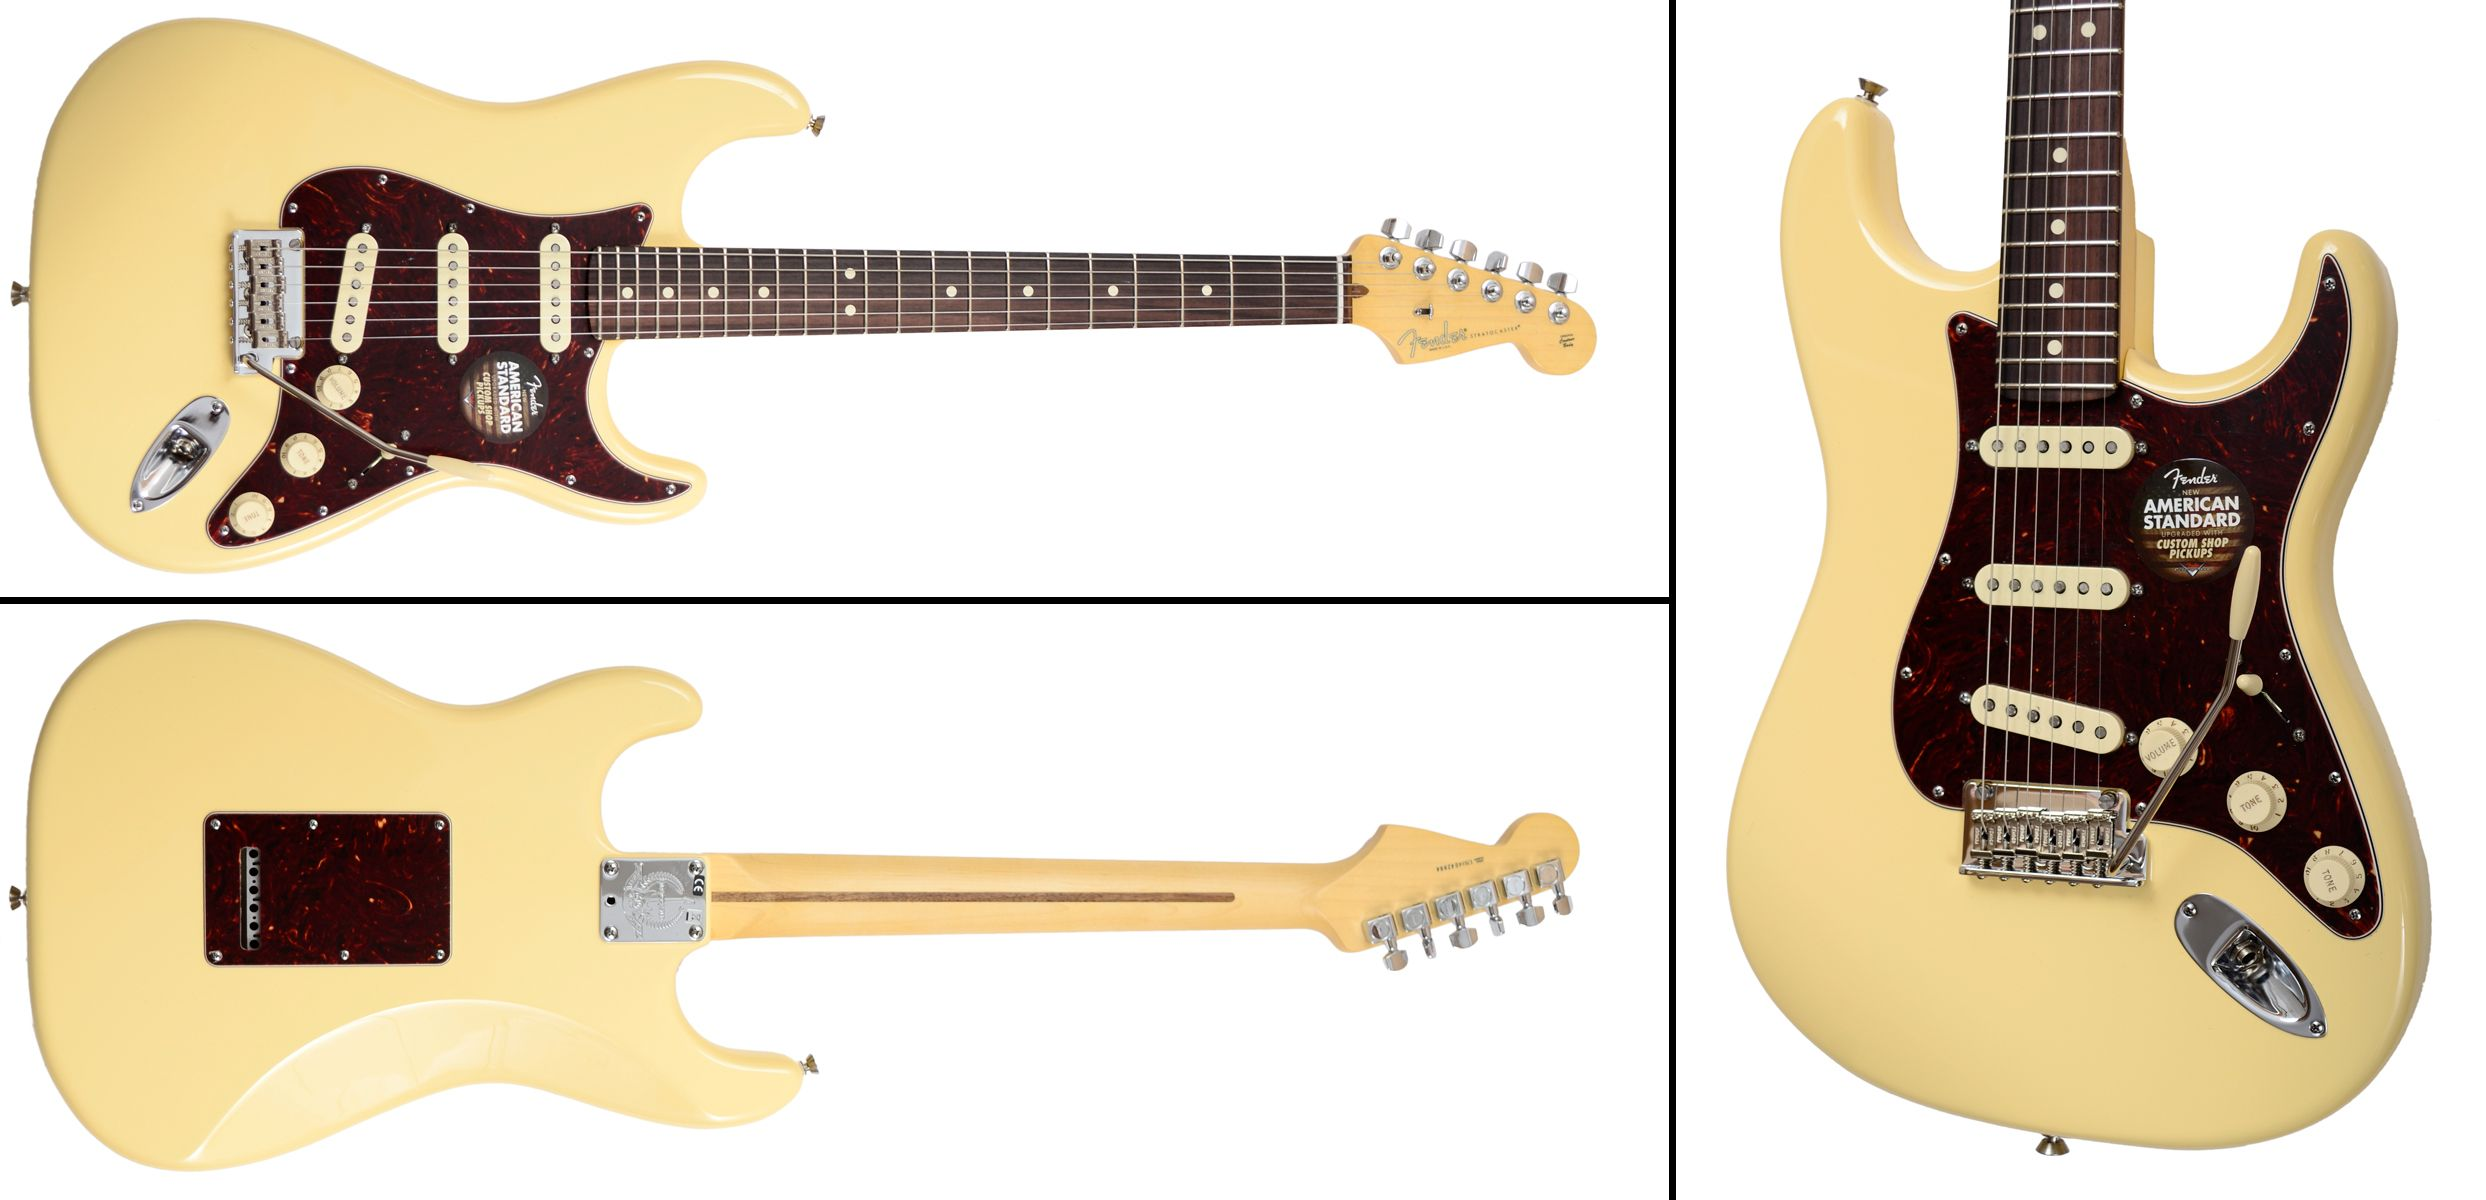 Fender Limited Edition American Standard Stratocaster - Vintage White, Rosewood